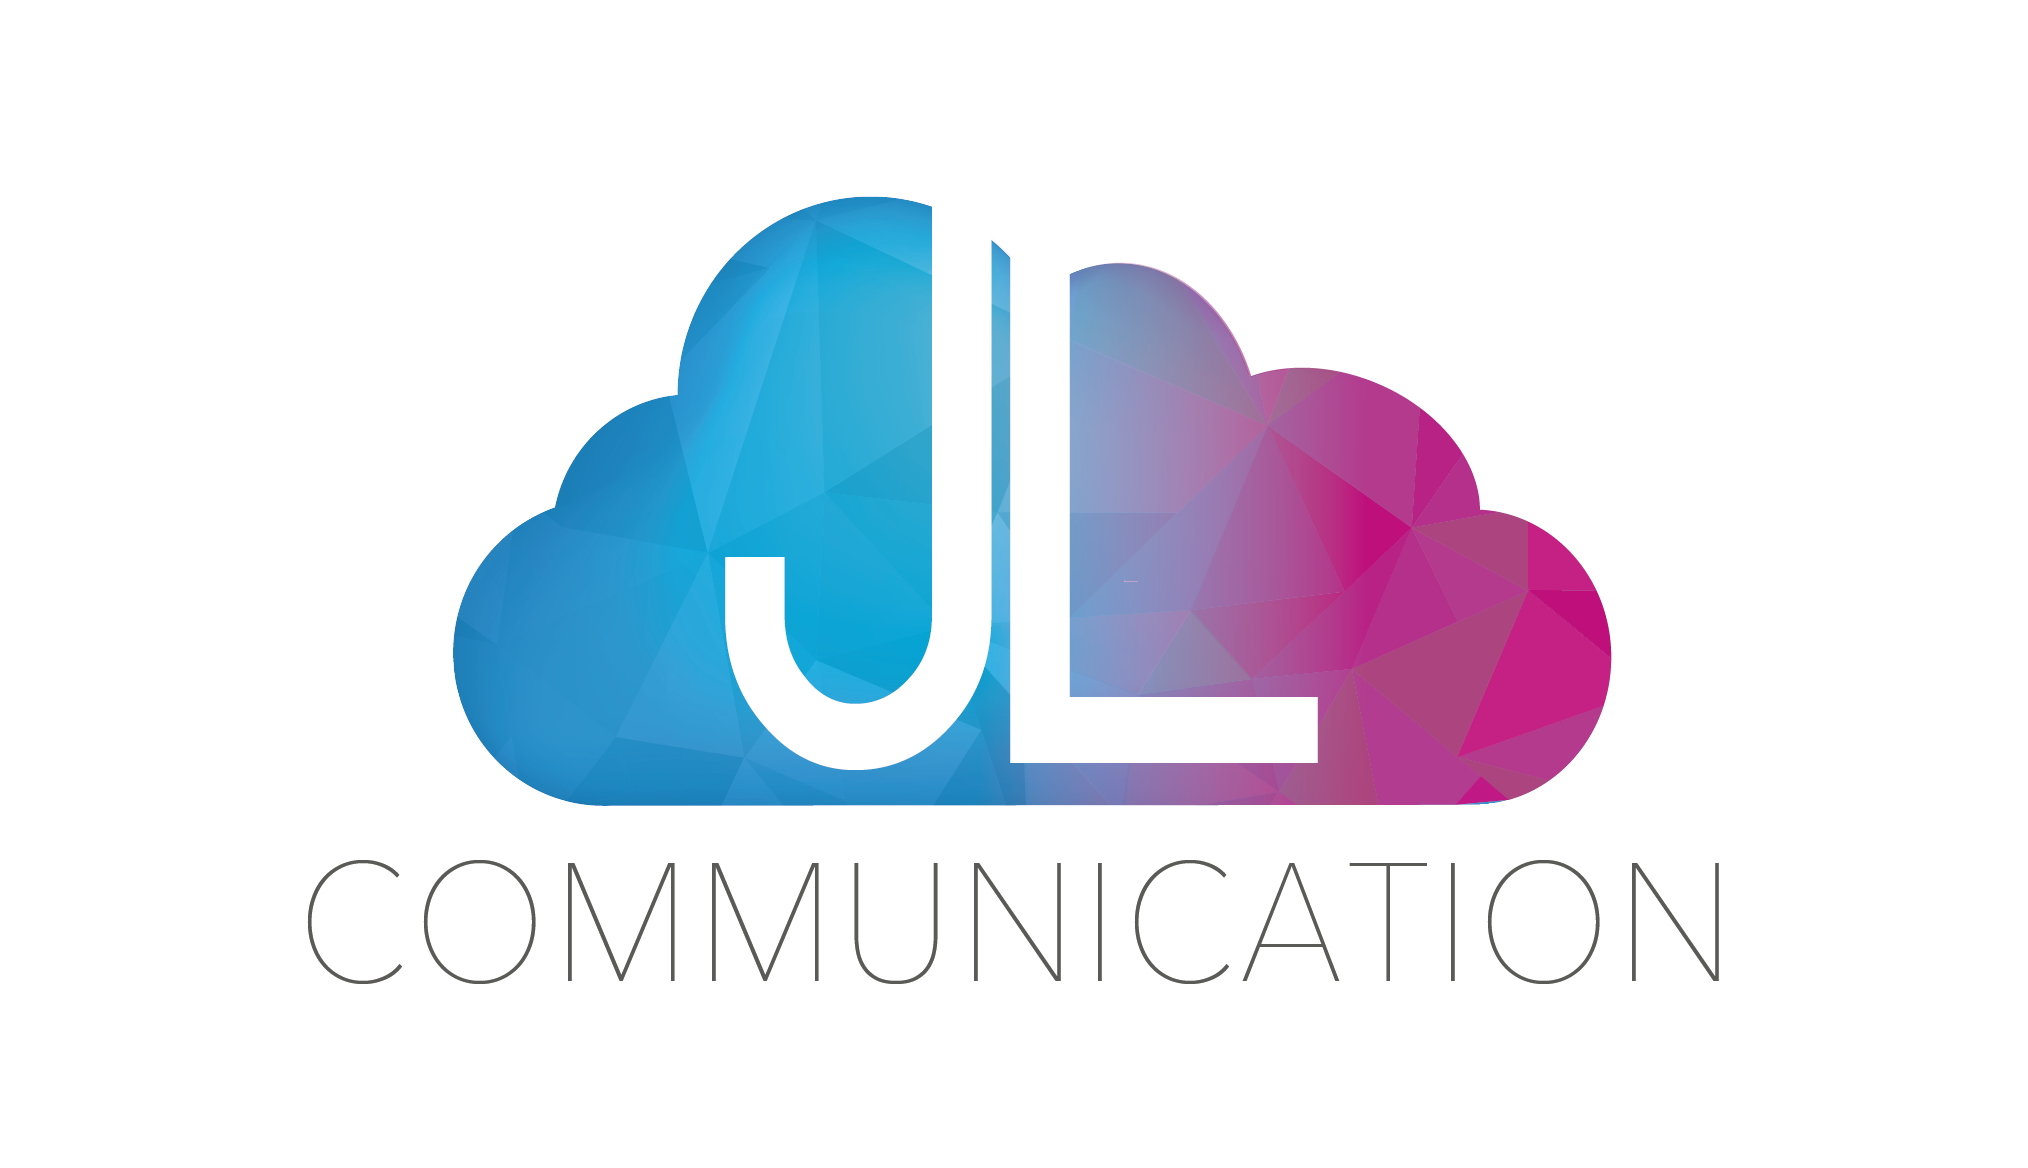 JL Communication